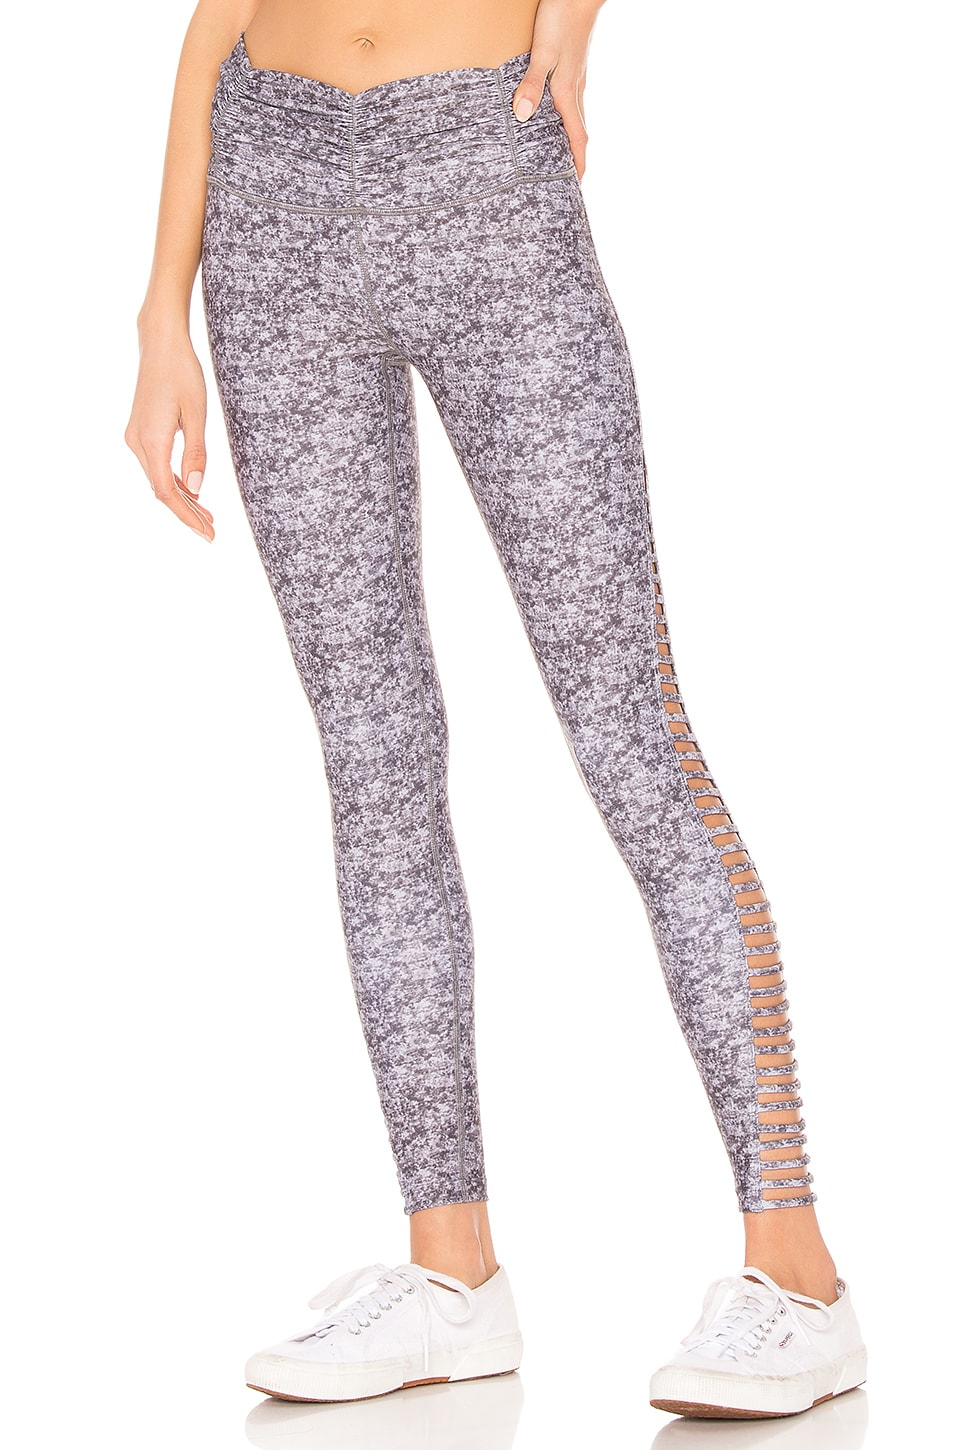 Chill by Will Jo Legging in Acid Wash